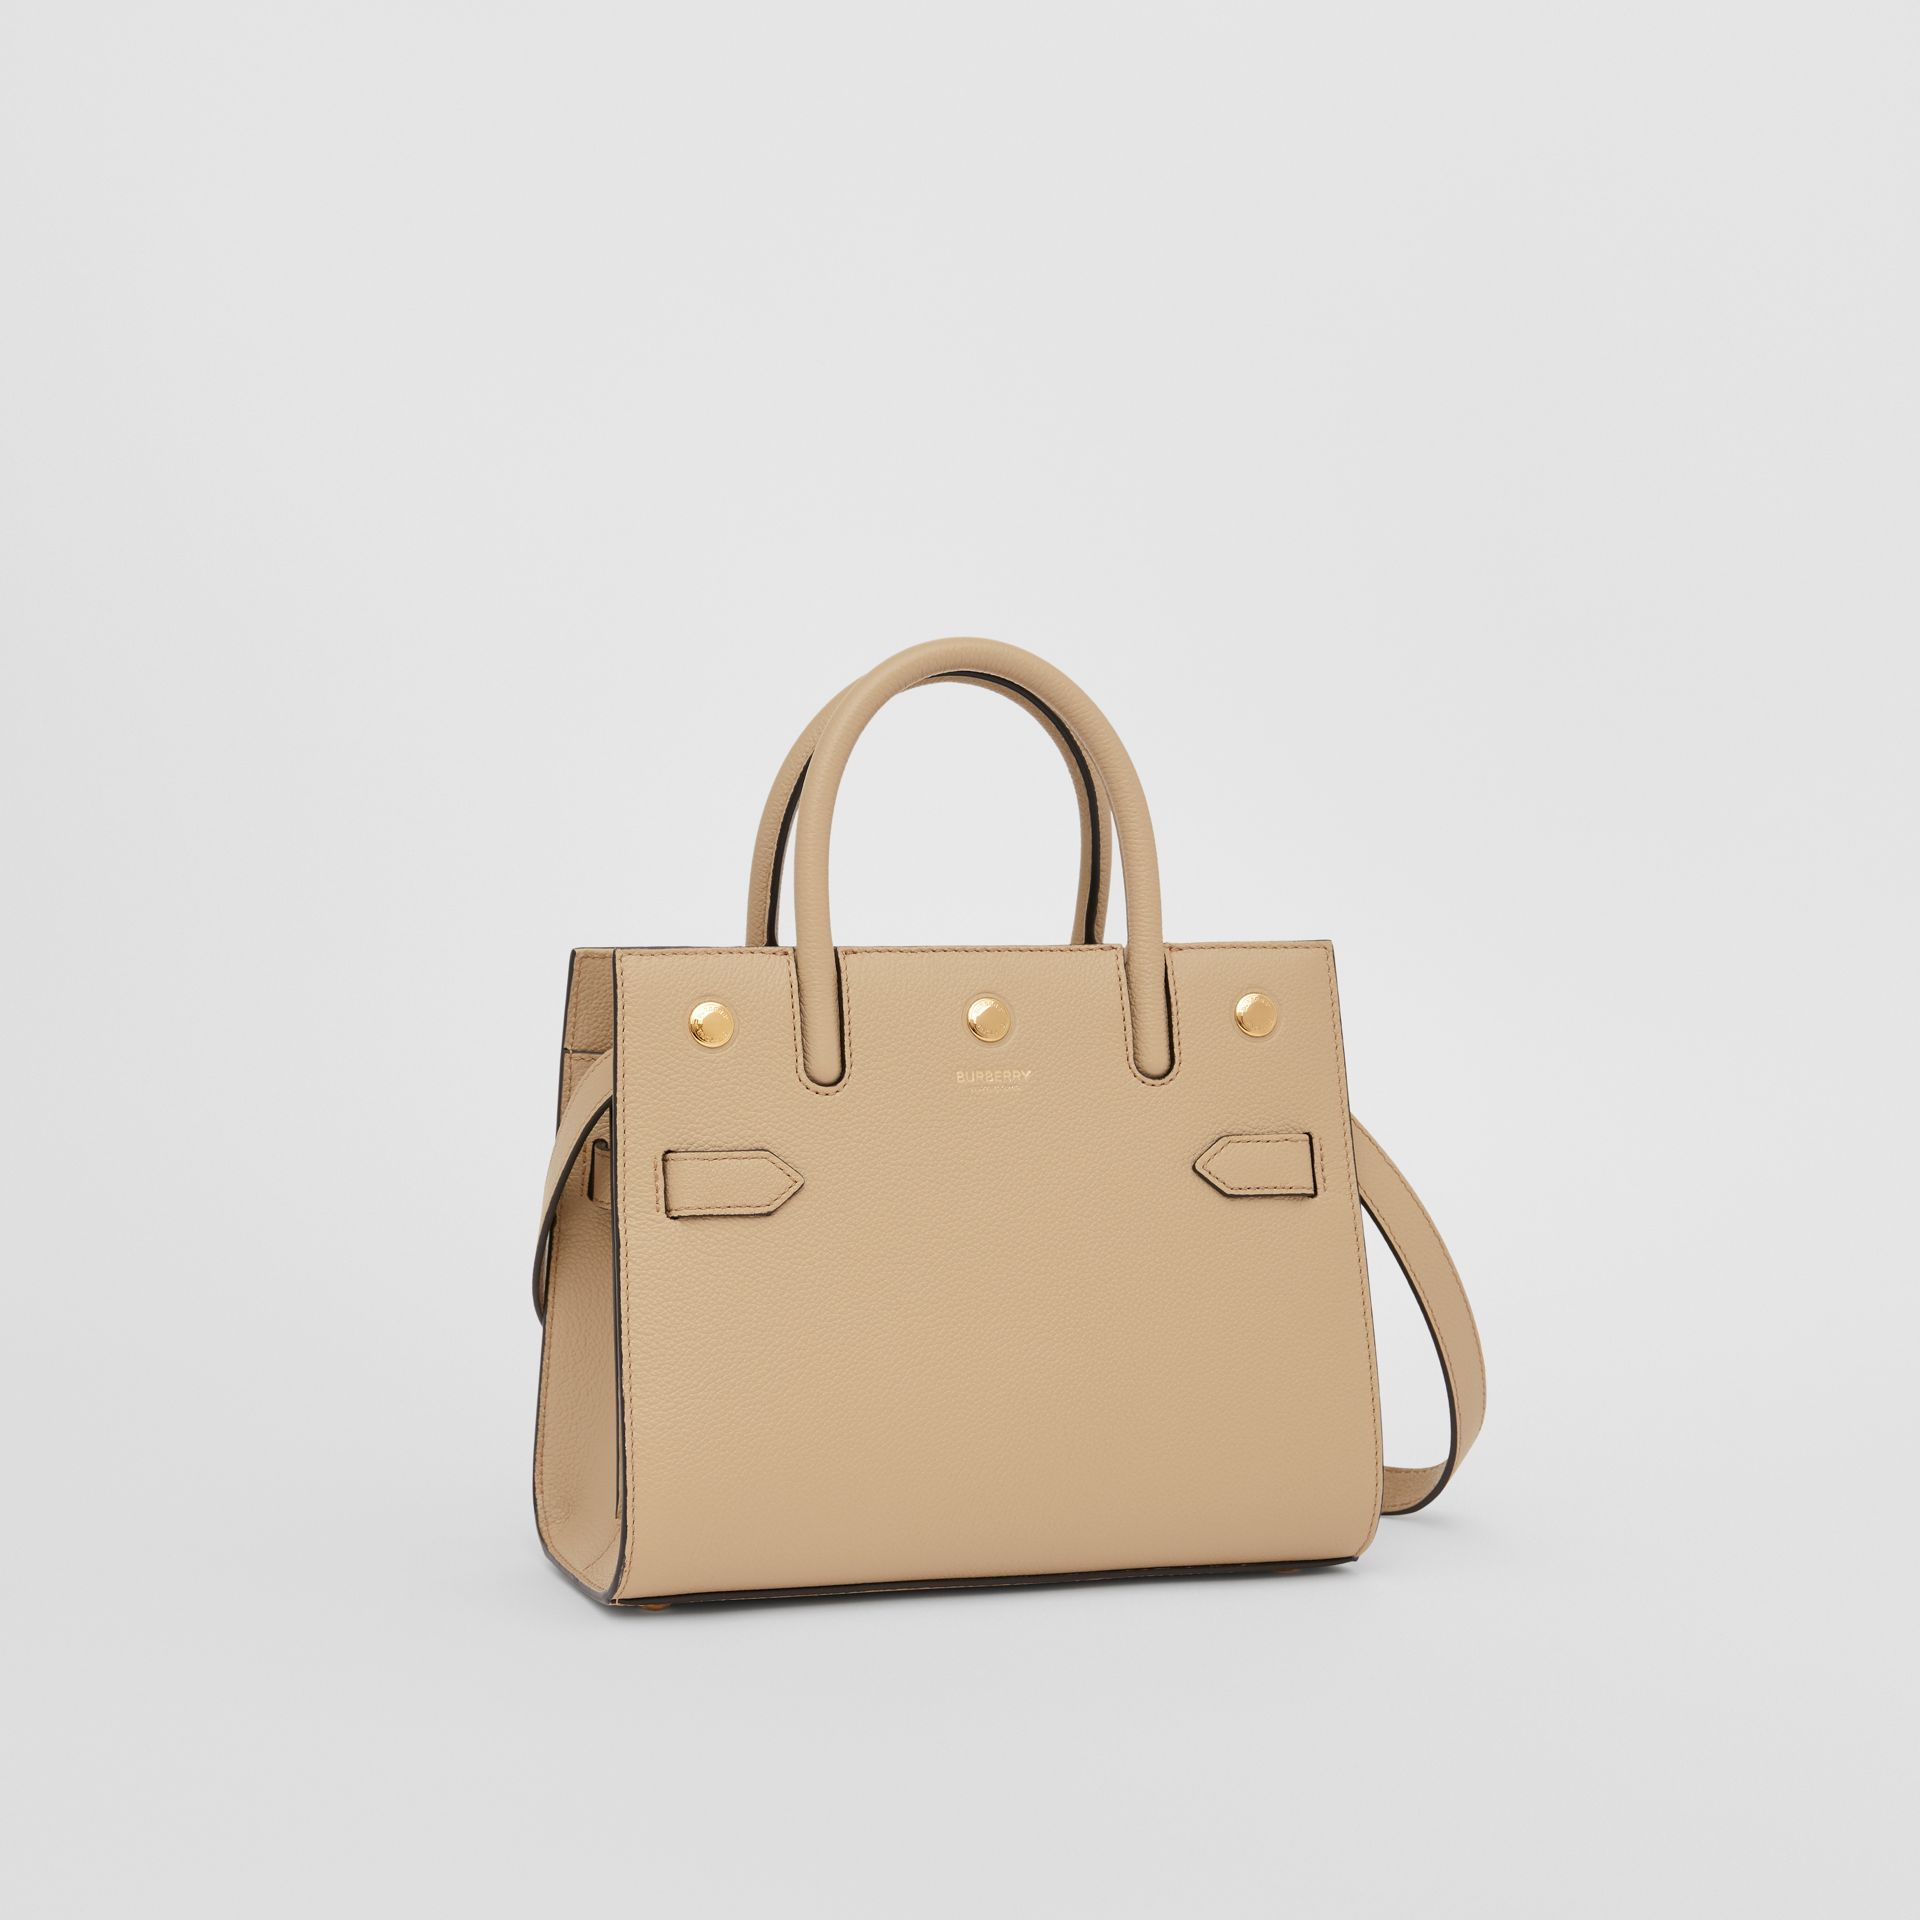 Mini Leather Two-handle Title Bag in Light Beige - Women | Burberry United States - gallery image 6